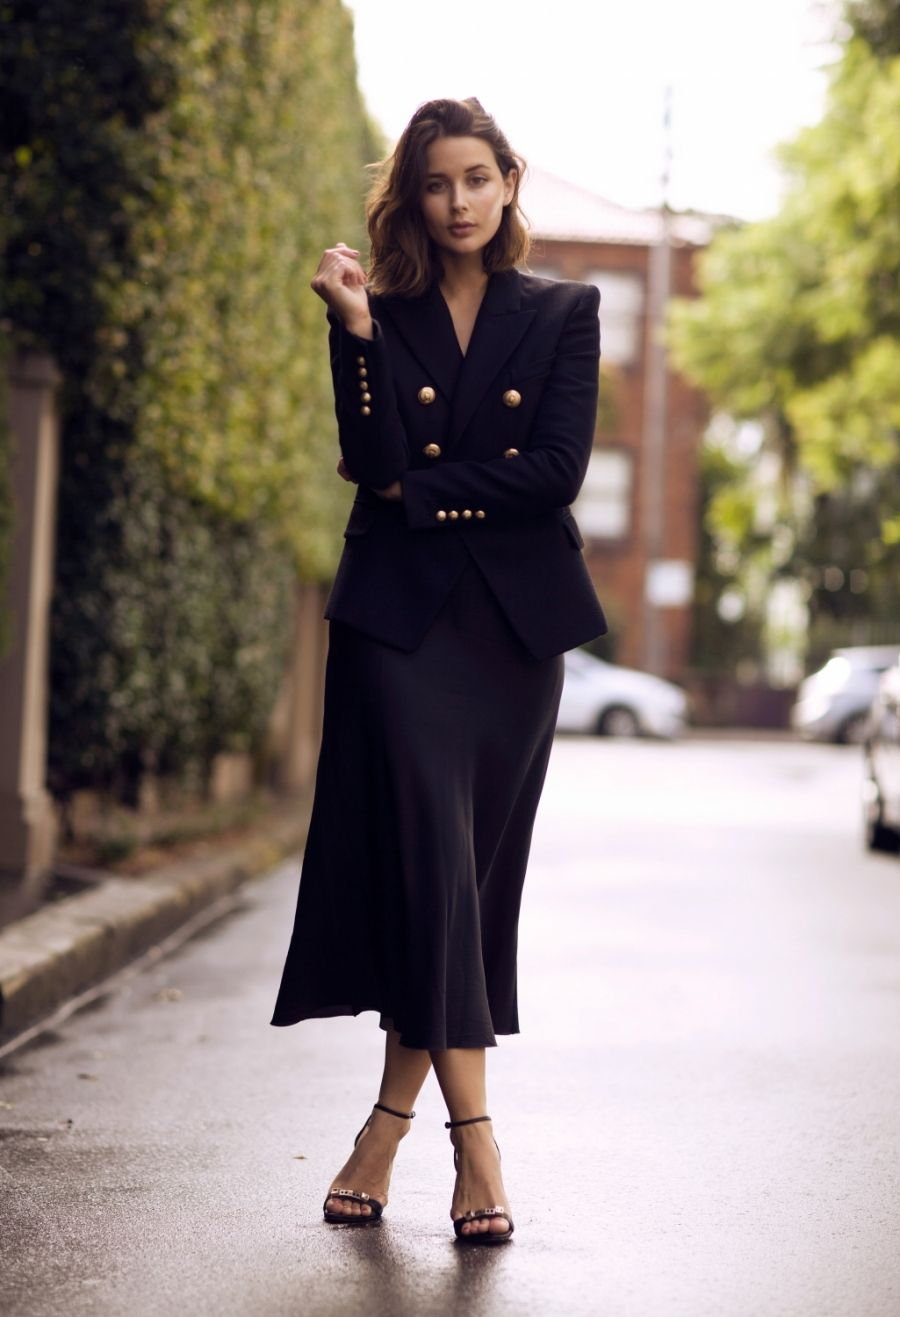 Street length black dress